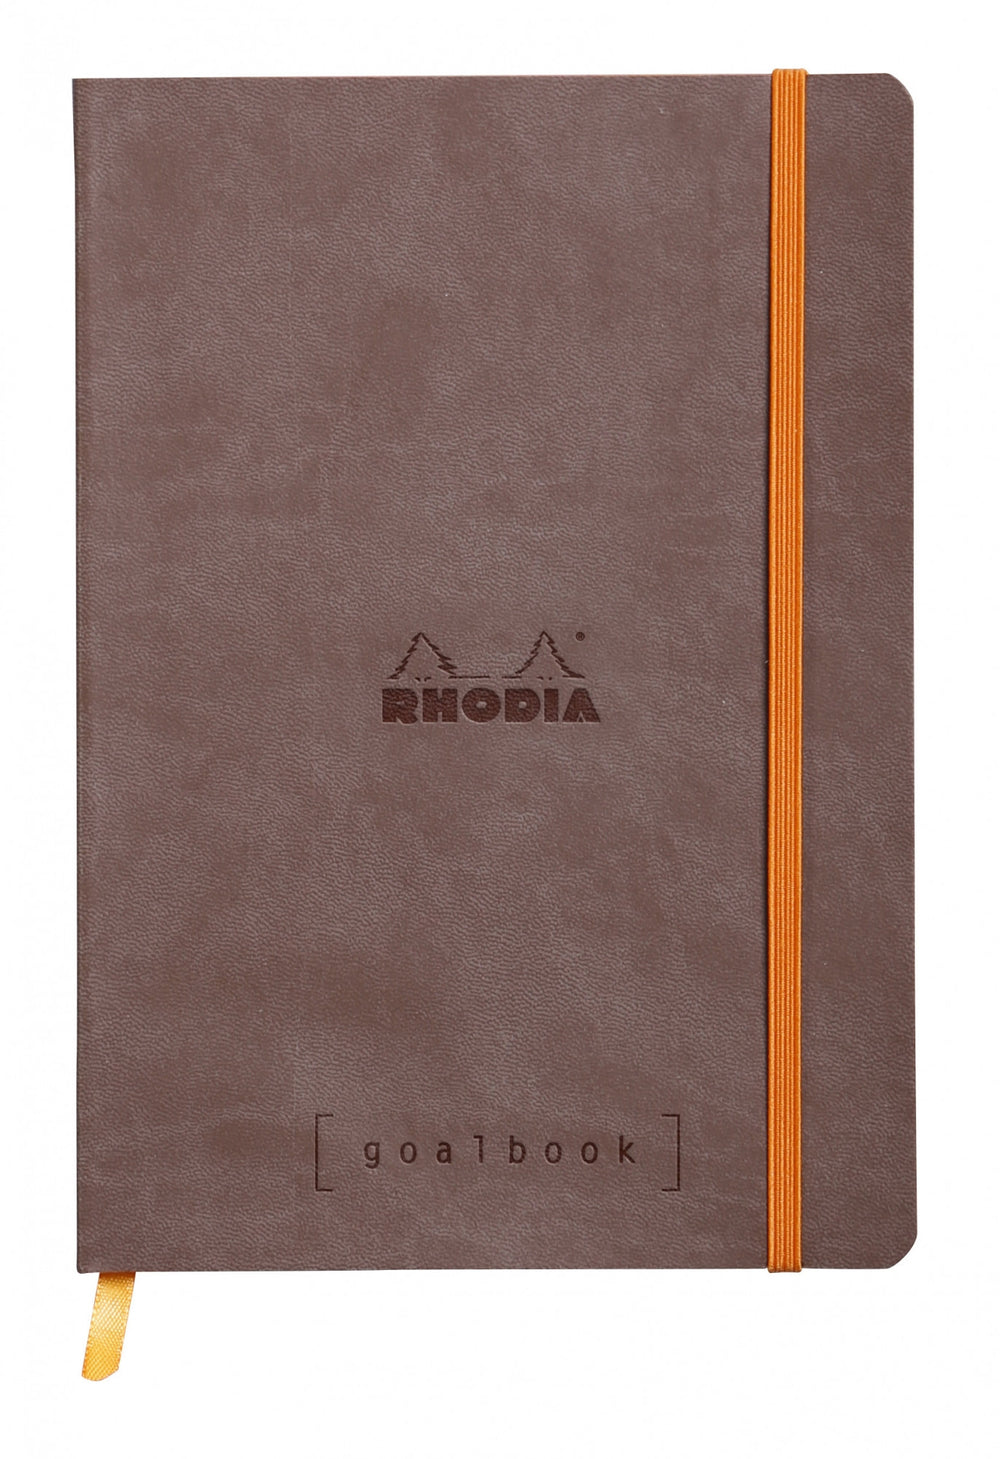 Rhodia A5 Goalbook- Chocolate